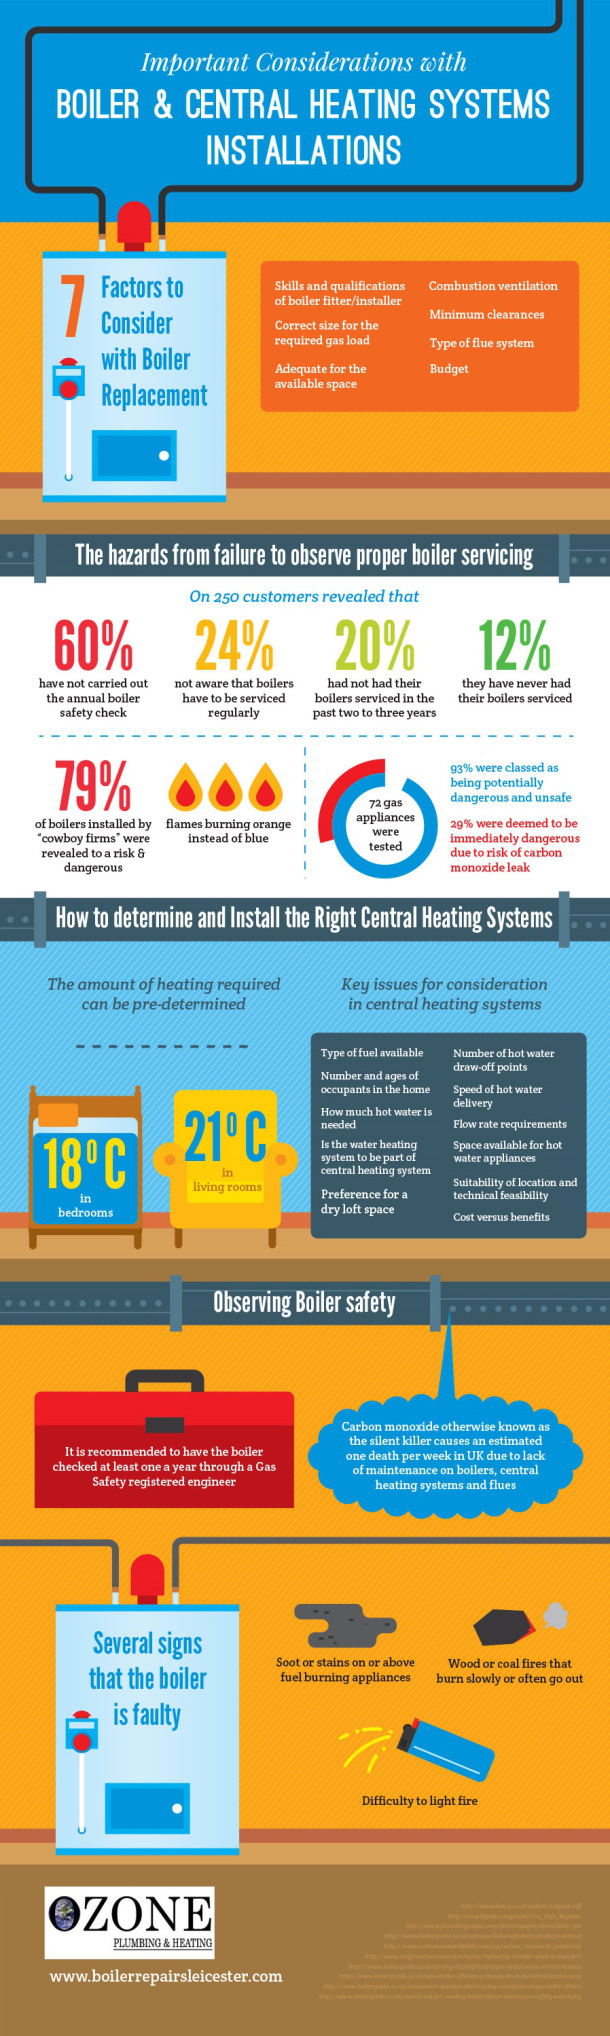 Important Considerations with Boiler & Central Heating Systems ...